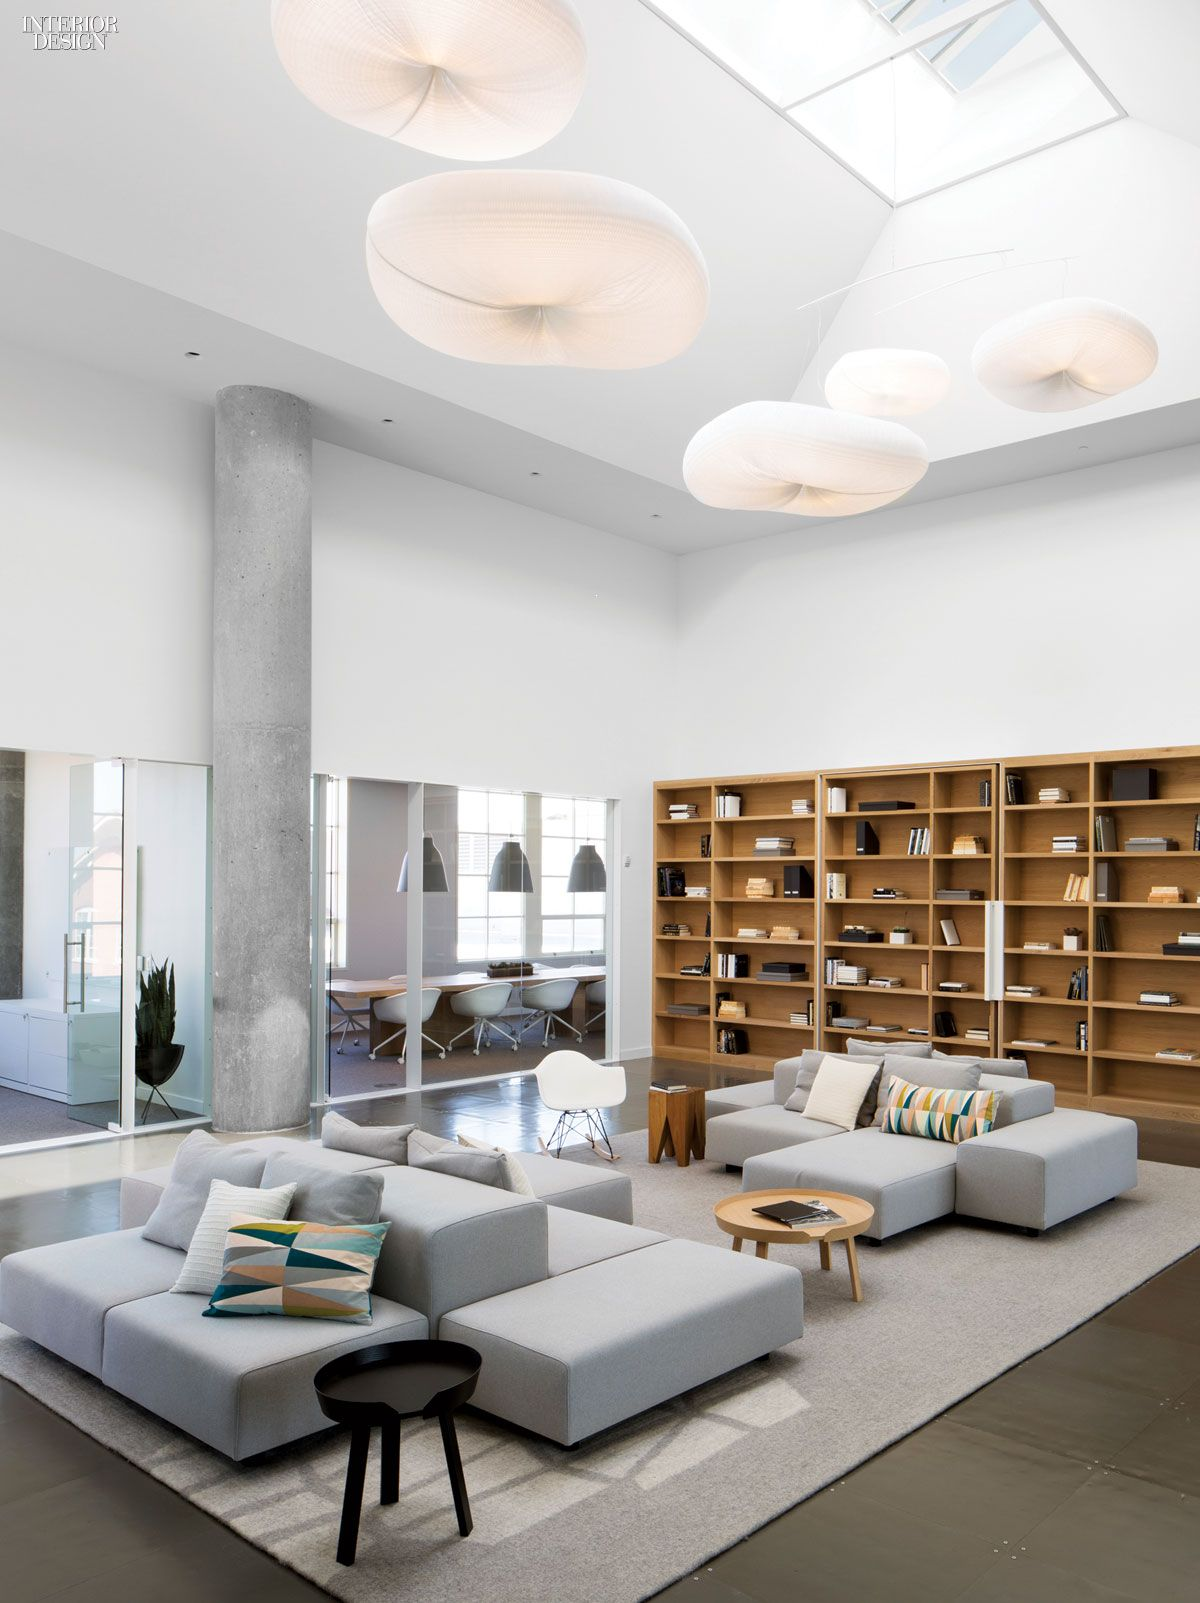 2014 boy winner small corporate office corporate for Small interior design firms